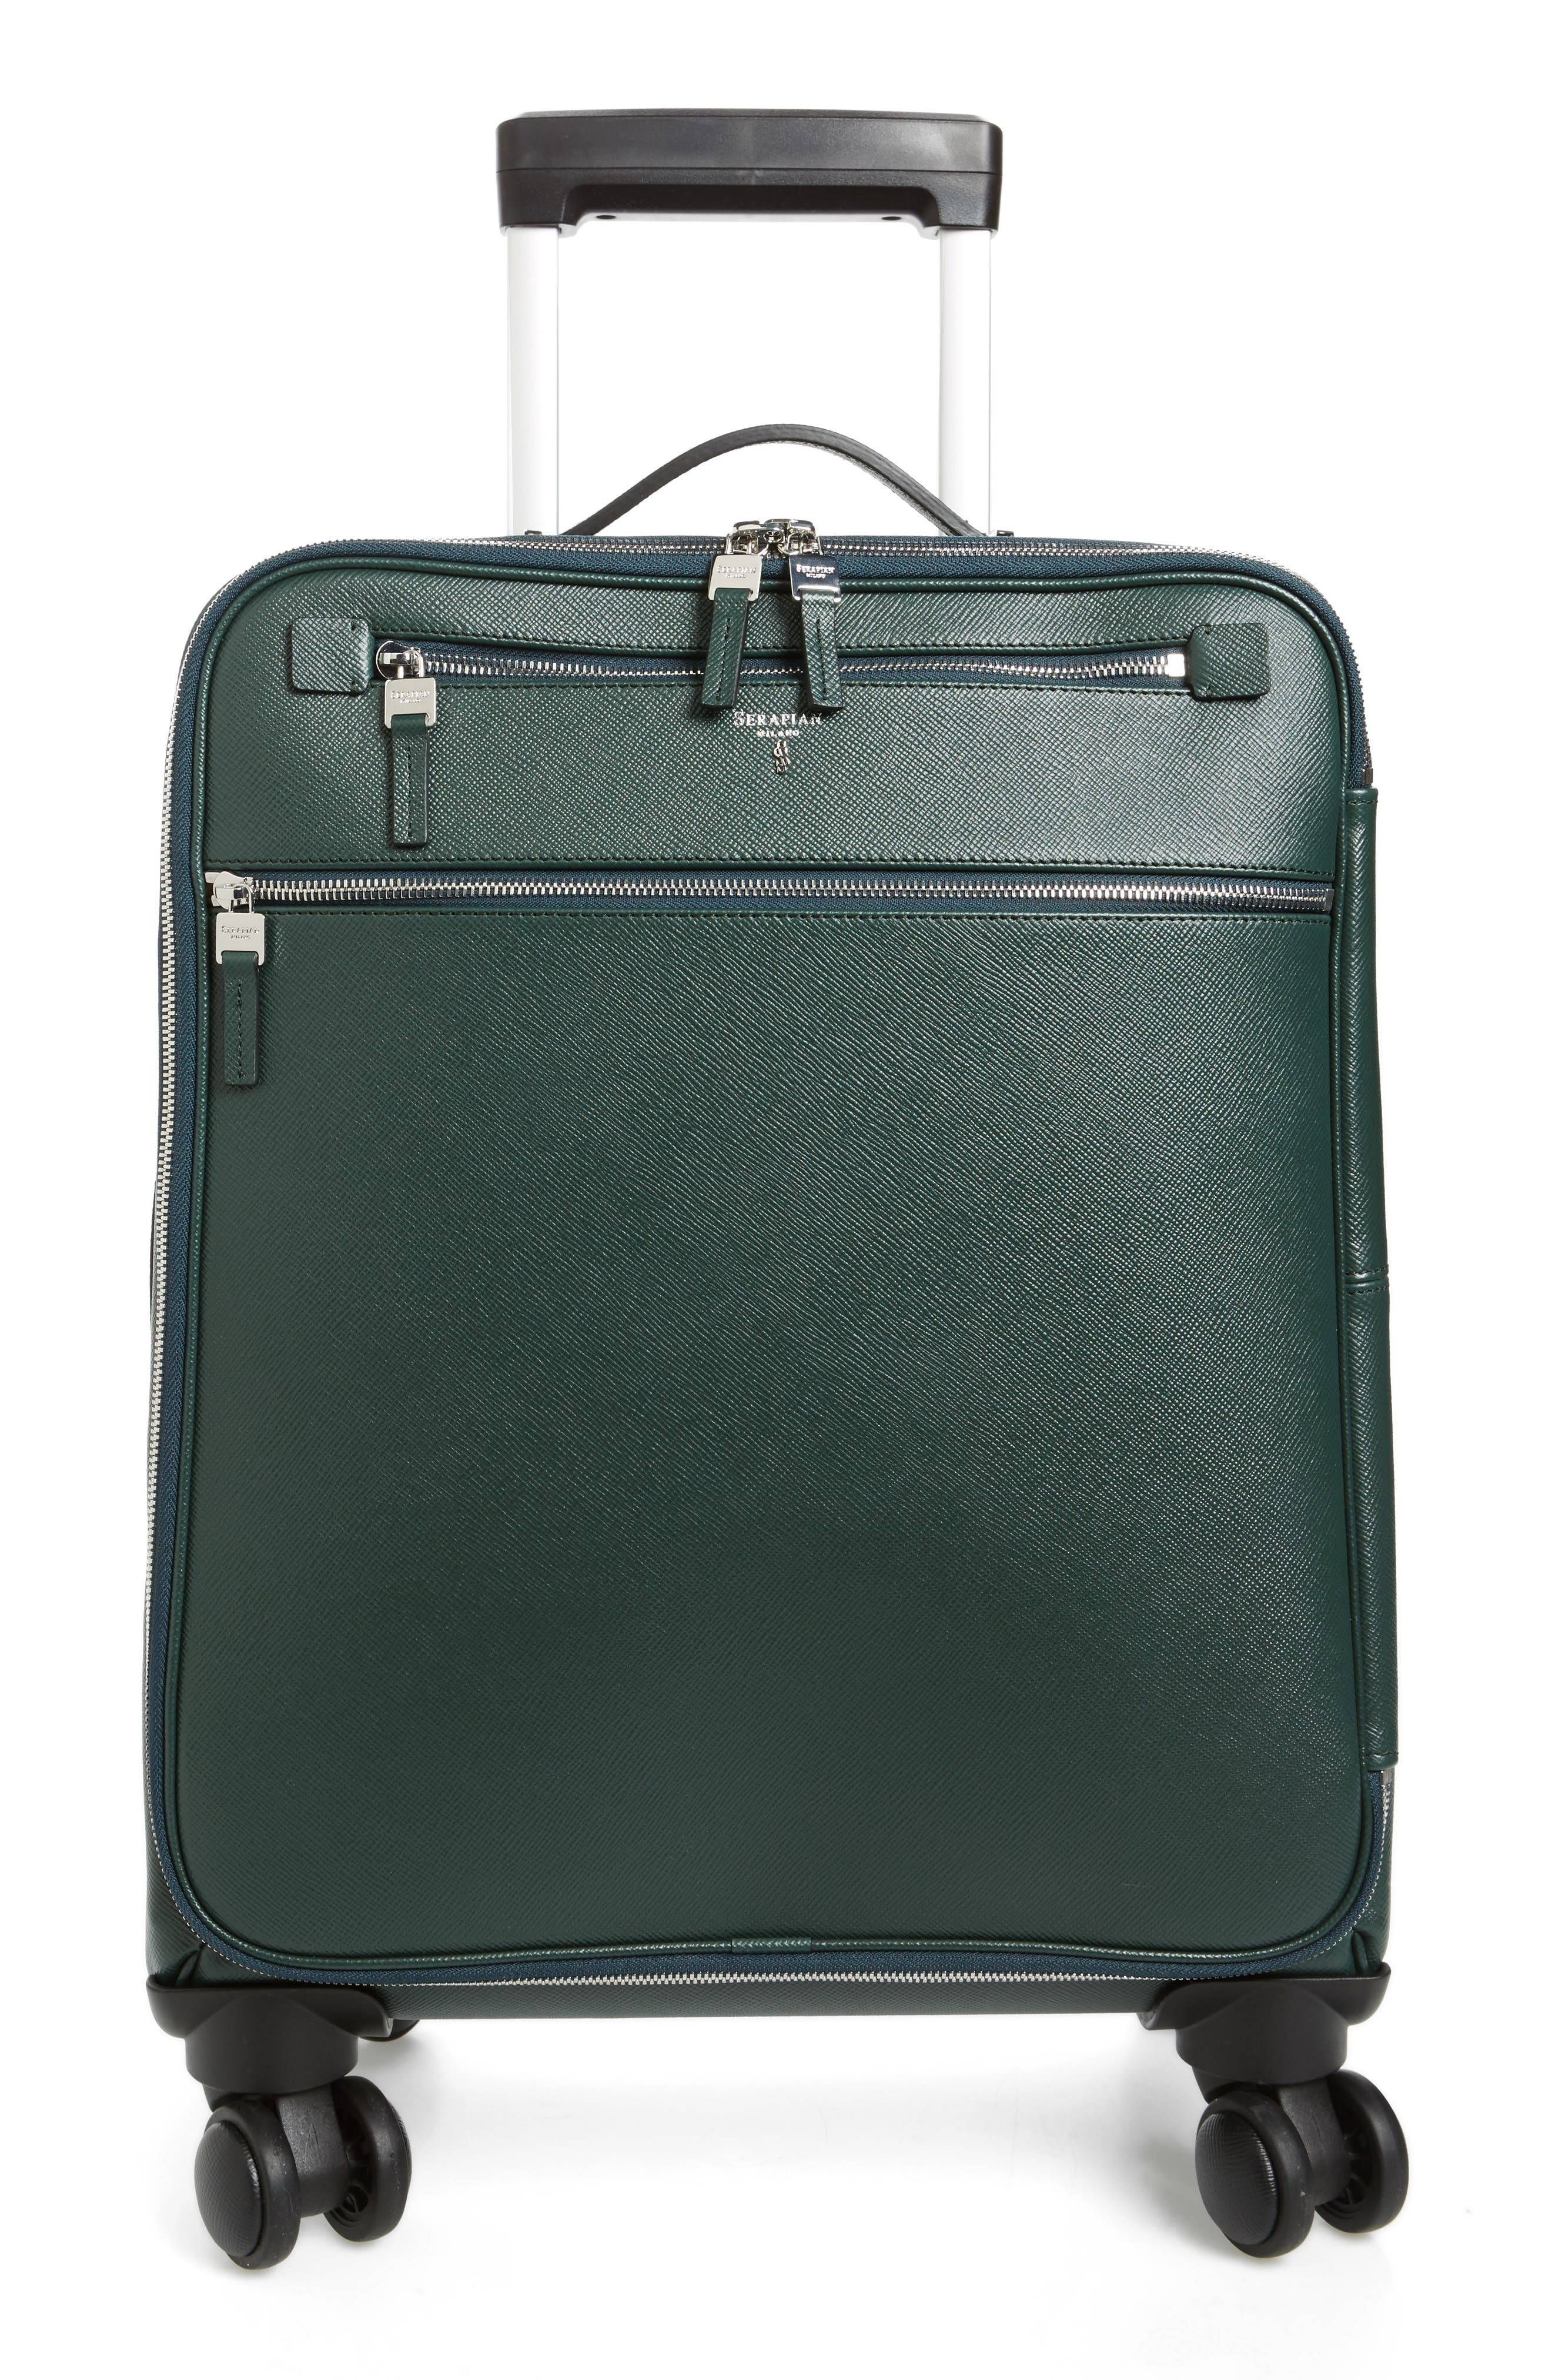 Alternate Image 1 Selected - Serapian Milano Trolley Spinner Wheeled Carry-On Suitcase